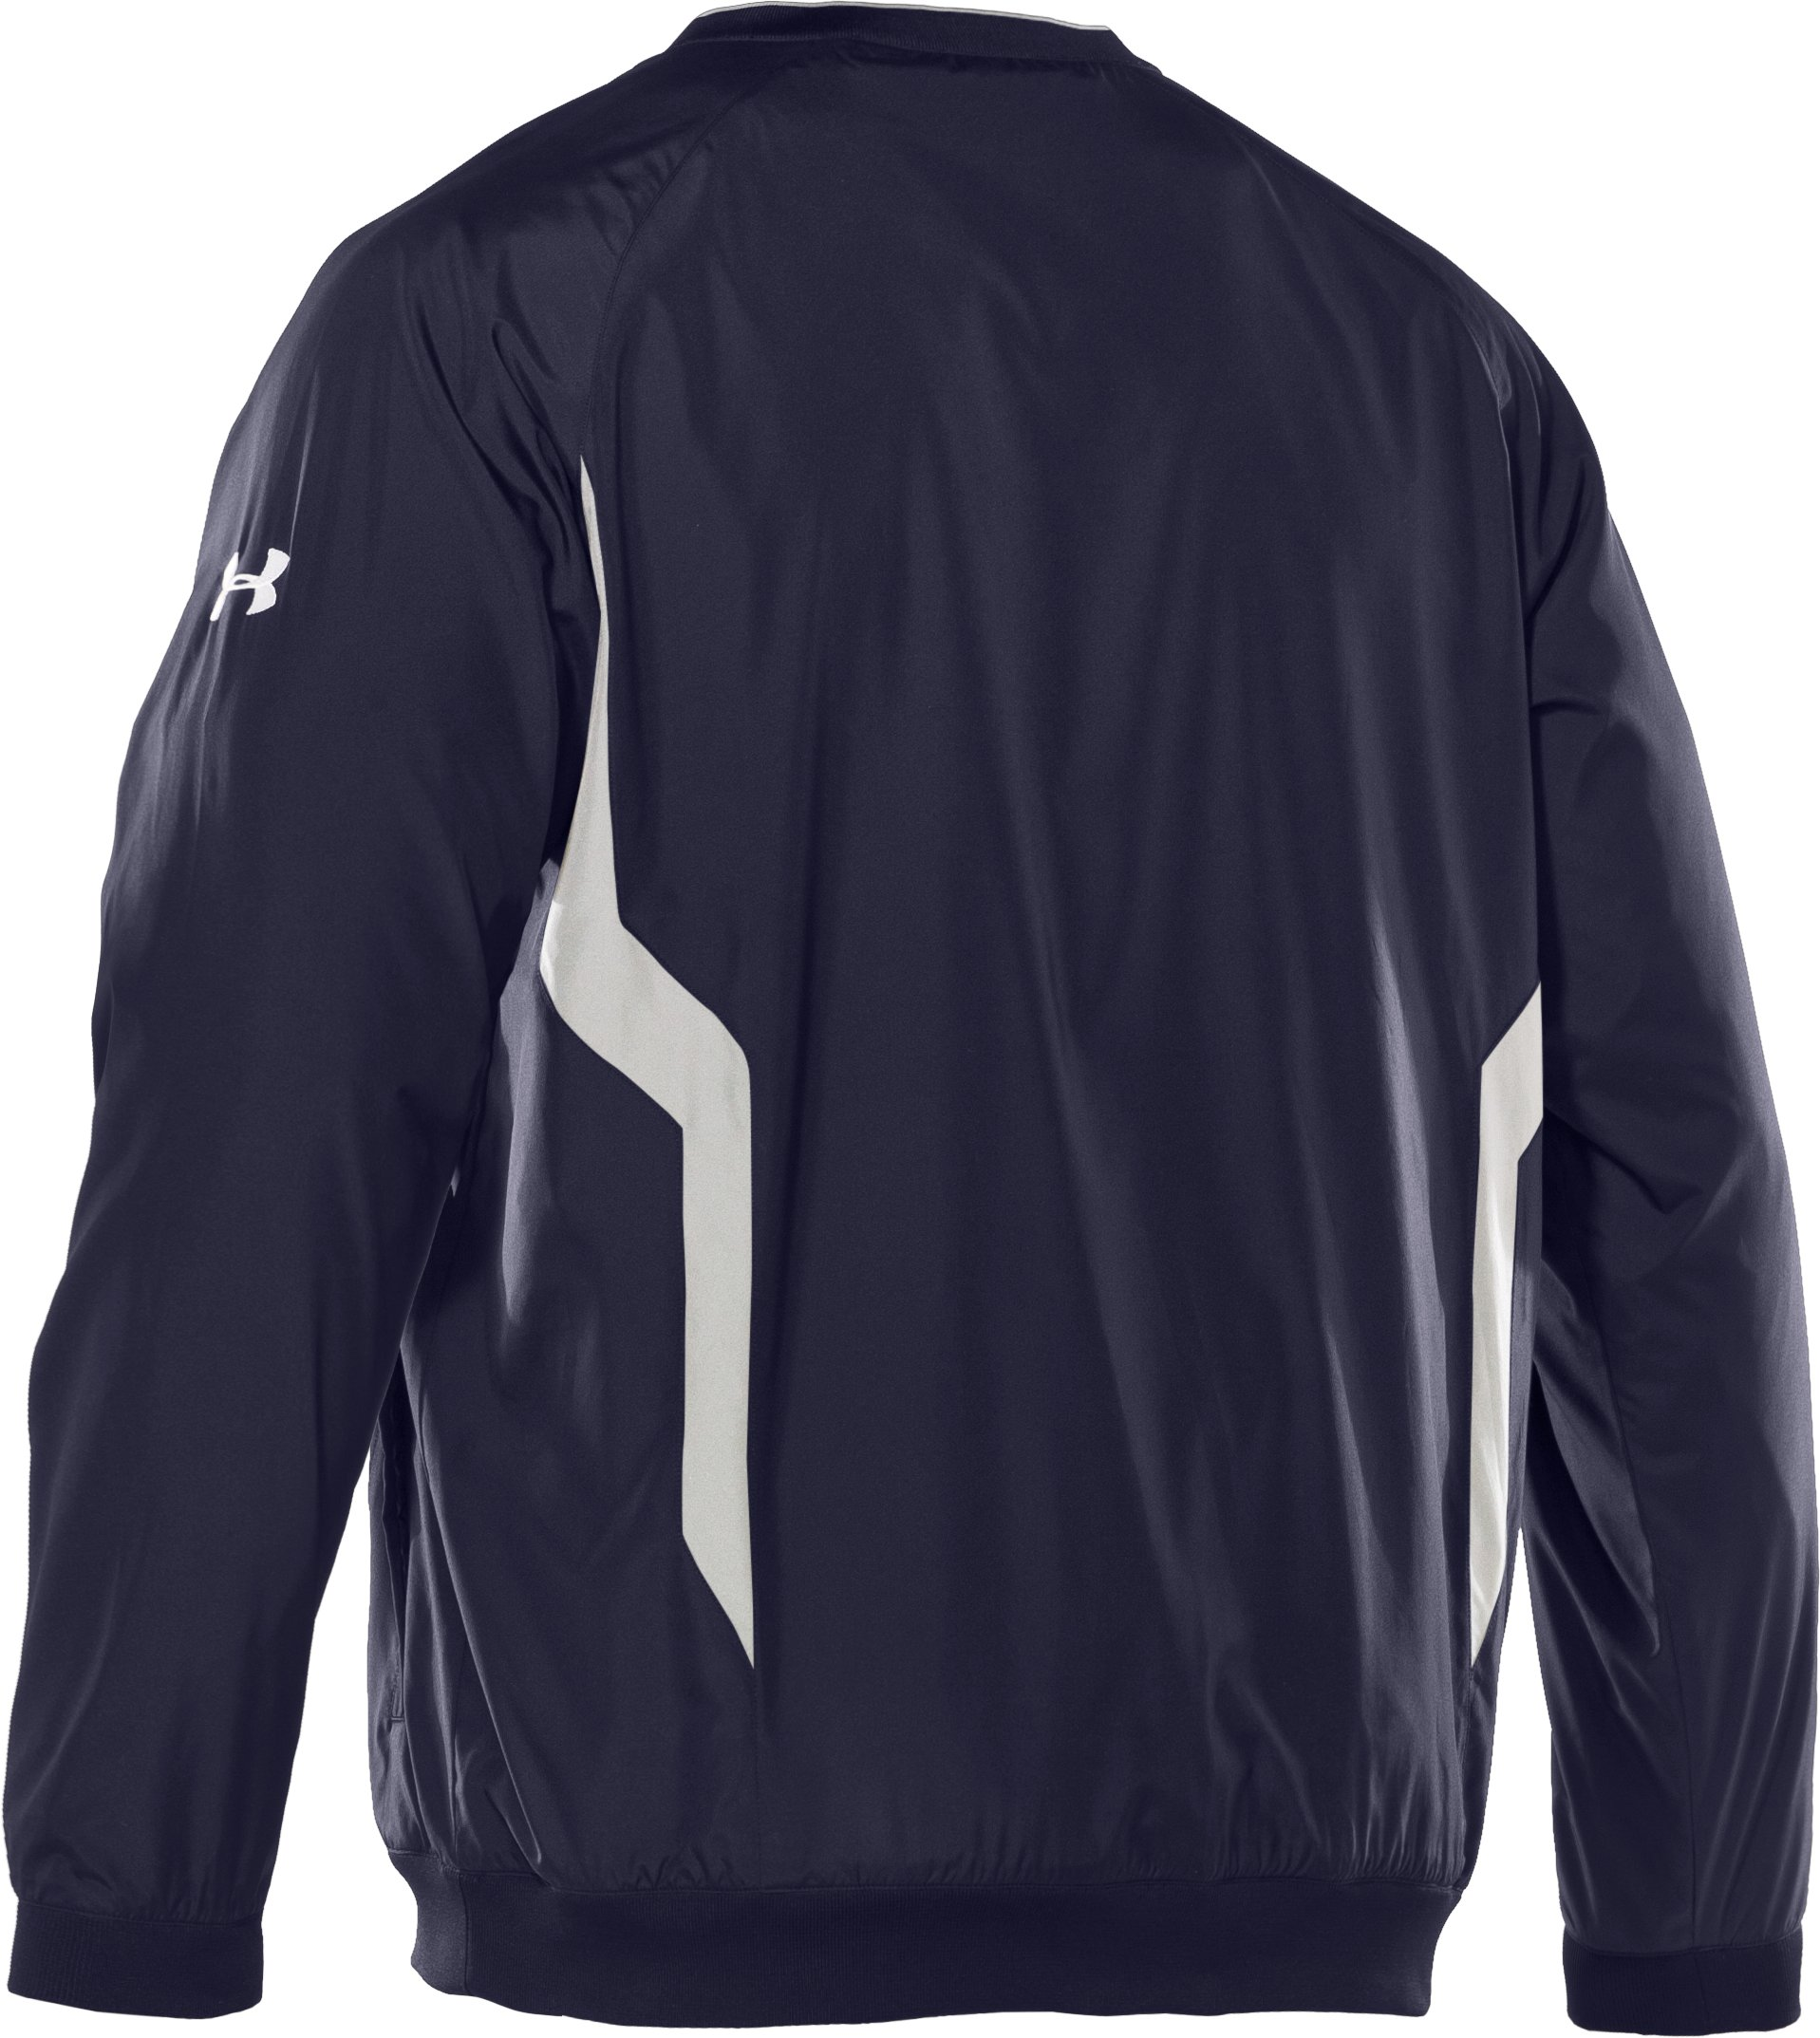 Men's Gamer V-Neck AllSeasonGear® Jacket, Midnight Navy,